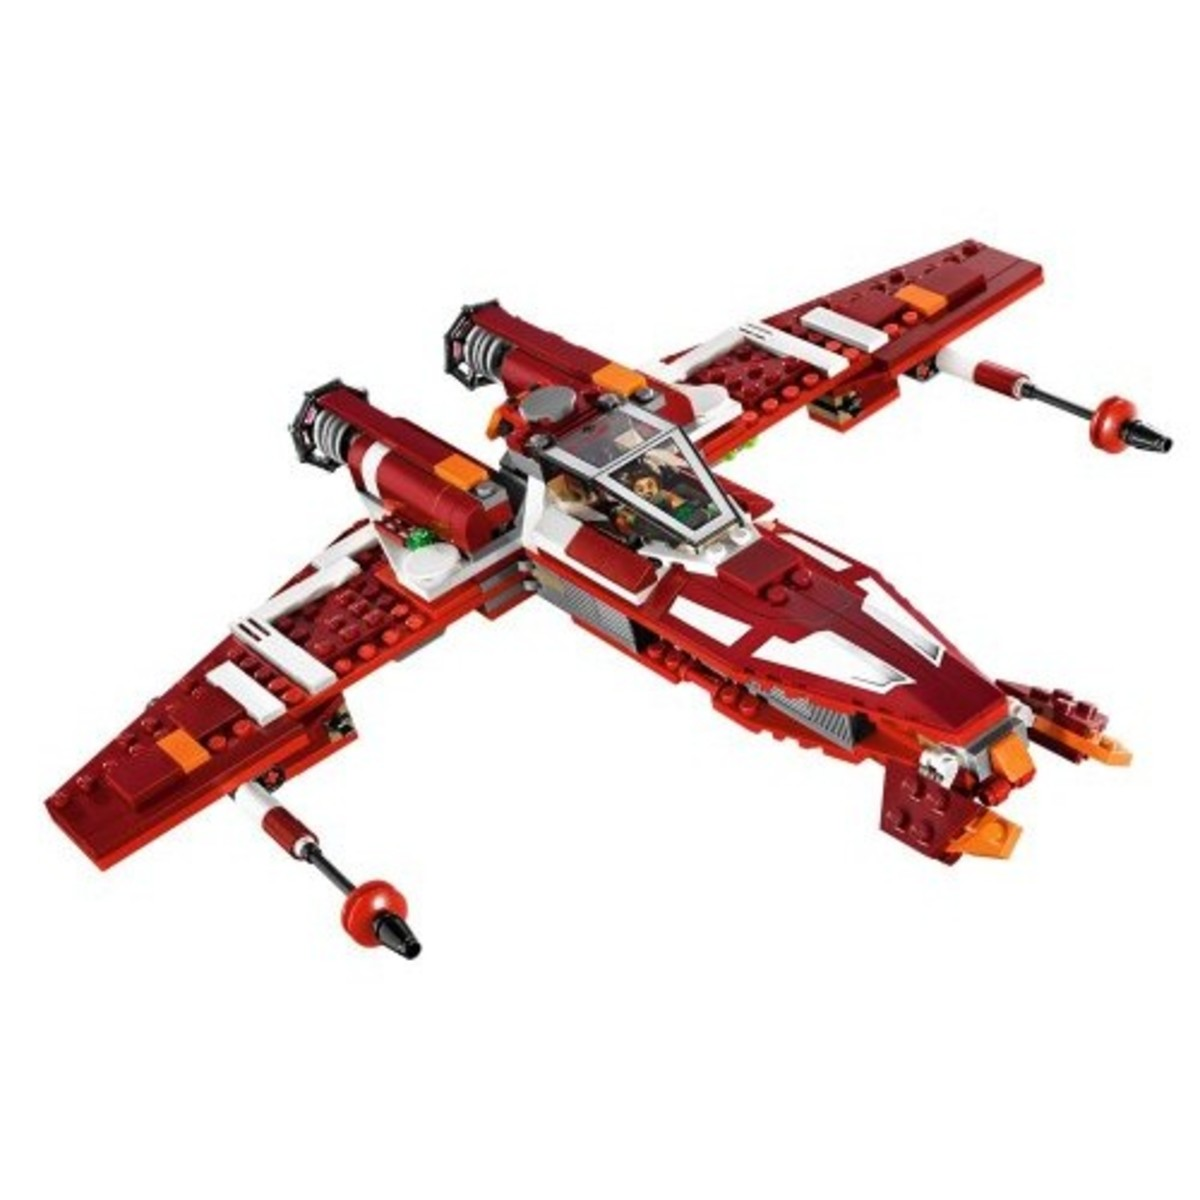 LEGO Star Wars Republic Striker Starfighter 9497 Assembled